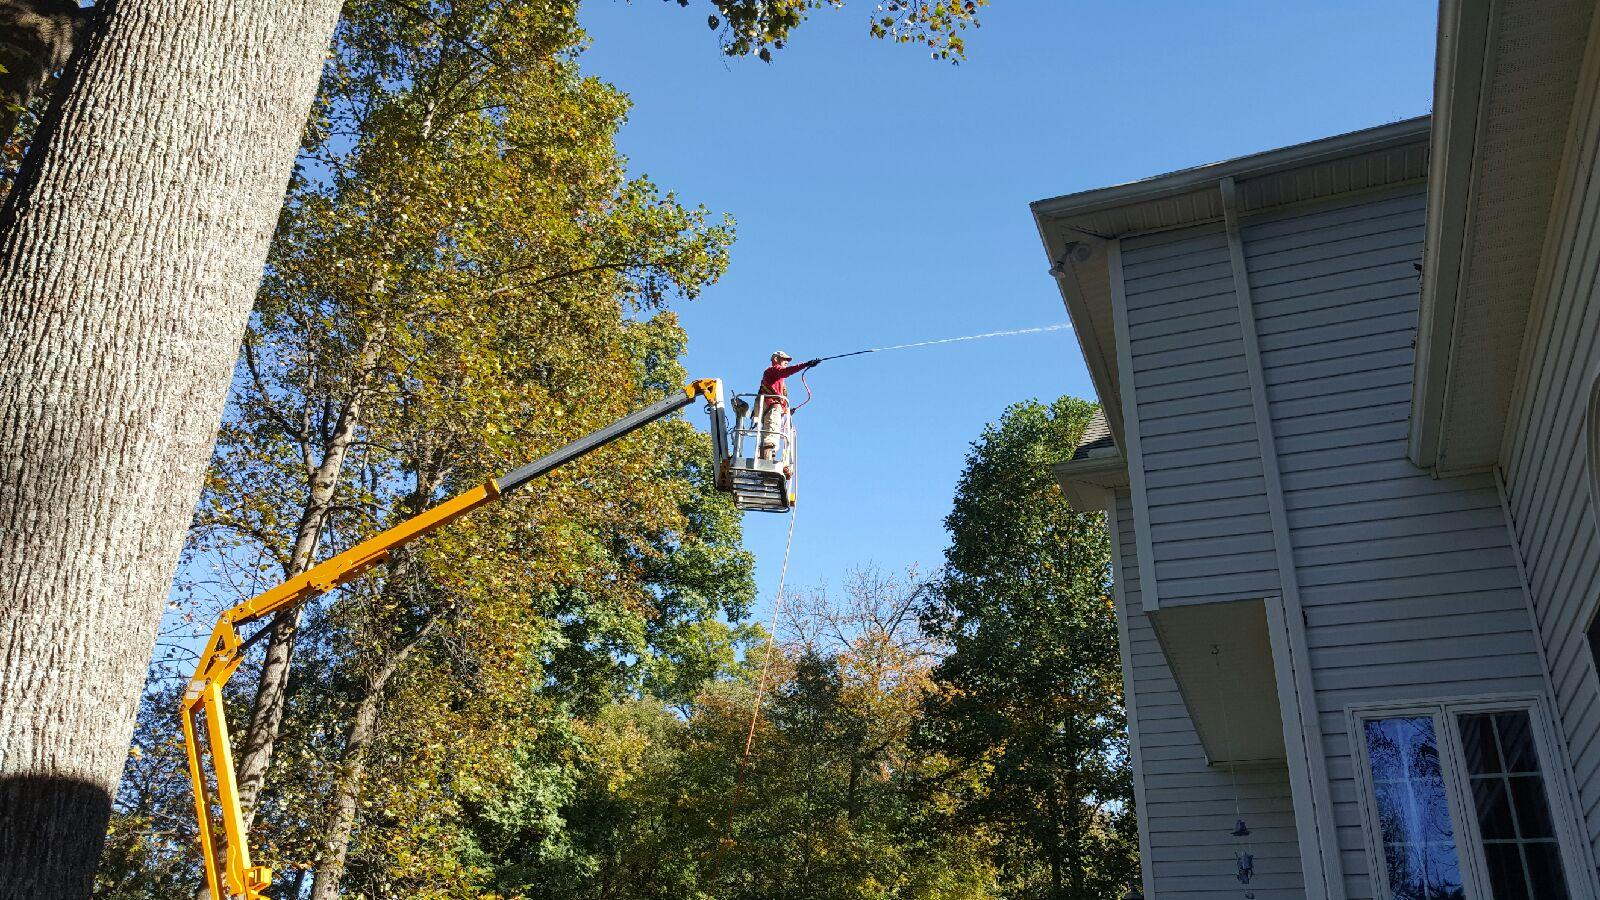 Boom Lift | Soft Wash Roof Contractor in Martinsburg WV